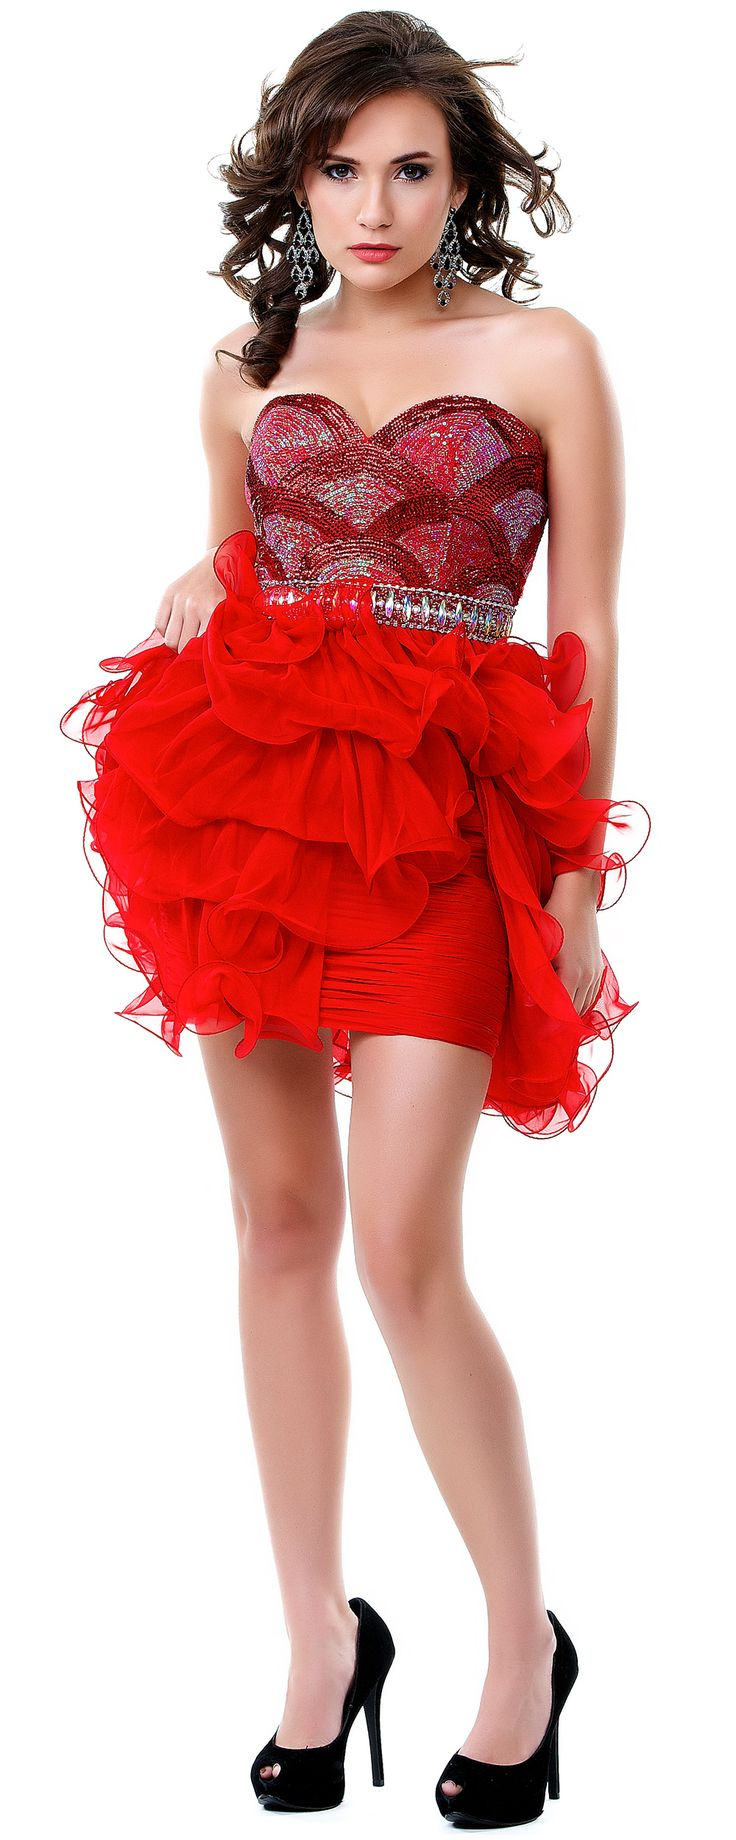 SALE! Red Luscious Layered Strapless Sweetheart Cocktail Dress (29144-CIN11894) van Cinderella Divine Moto - You will be...Price - $99.00-PGHcNXzI